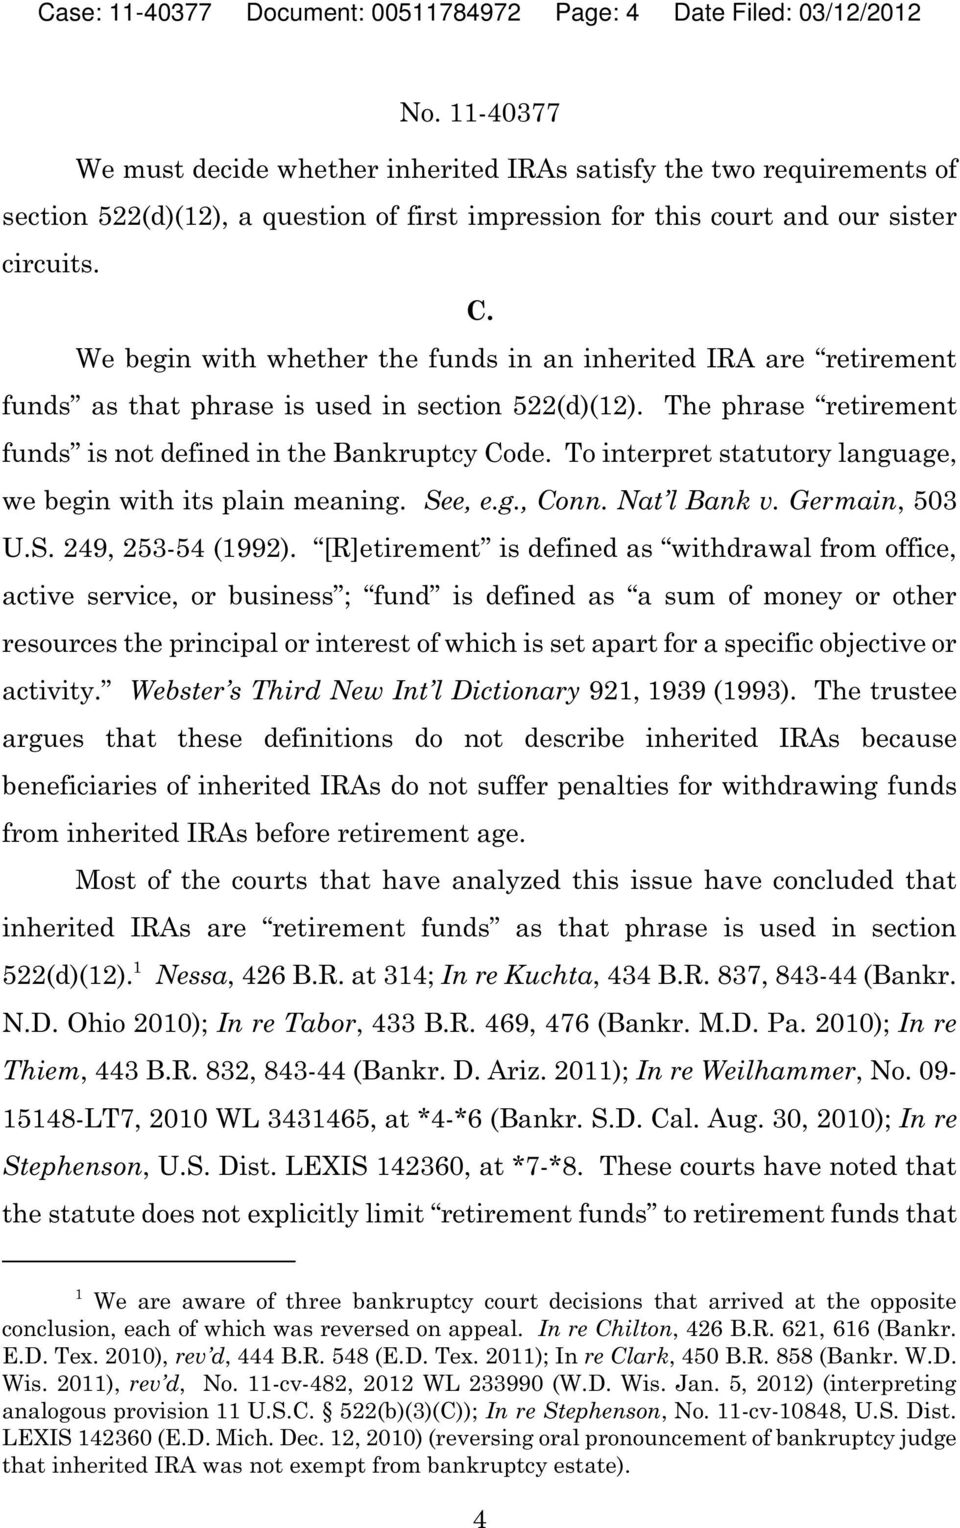 The phrase retirement funds is not defined in the Bankruptcy Code. To interpret statutory language, we begin with its plain meaning. See, e.g., Conn. Nat l Bank v. Germain, 503 U.S. 249, 253-54 (1992).